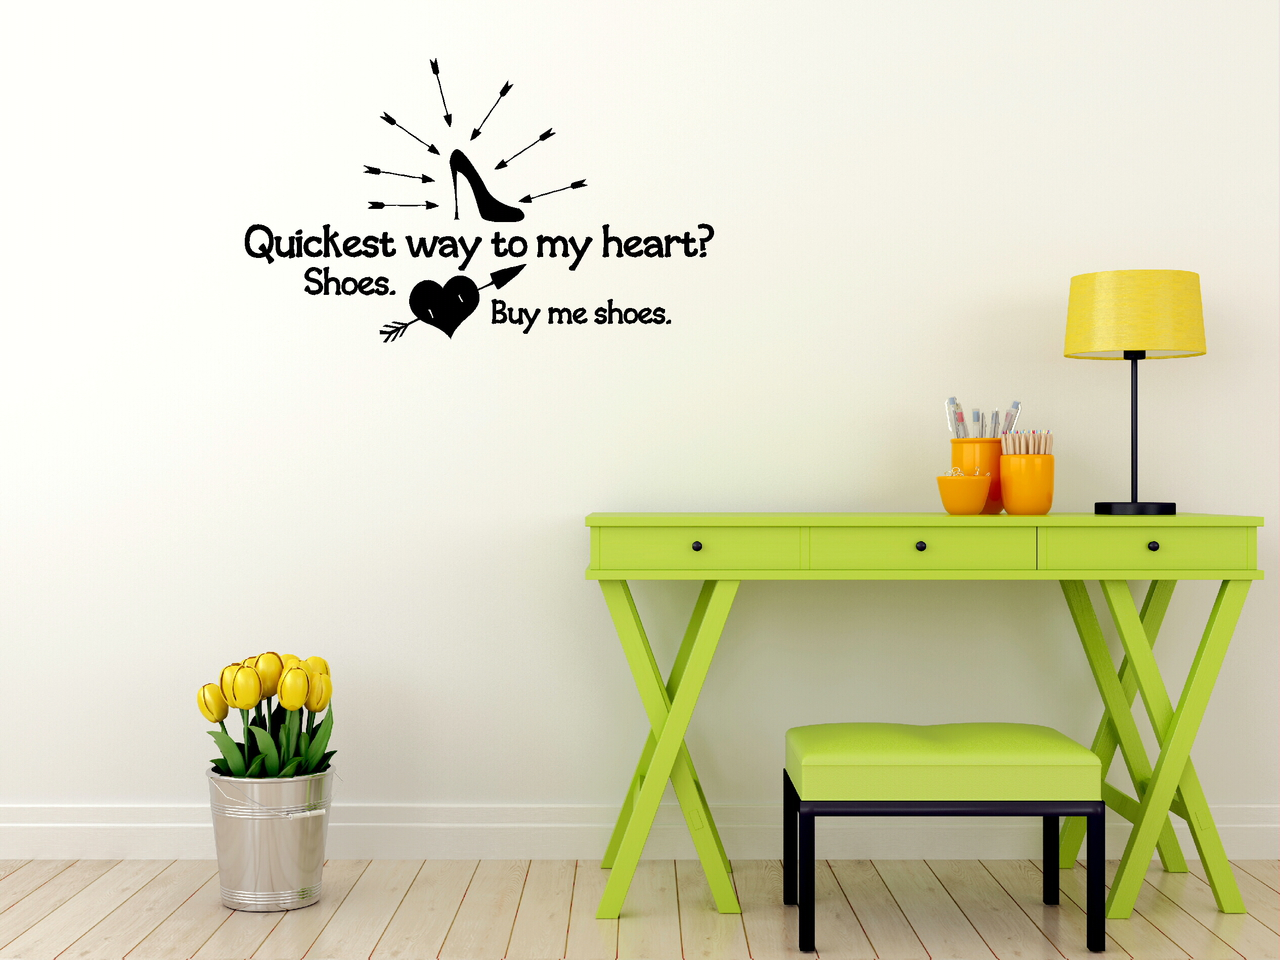 Buy Me Shoes - Funny Wall Decal Saying for Bedroom, Home Decor